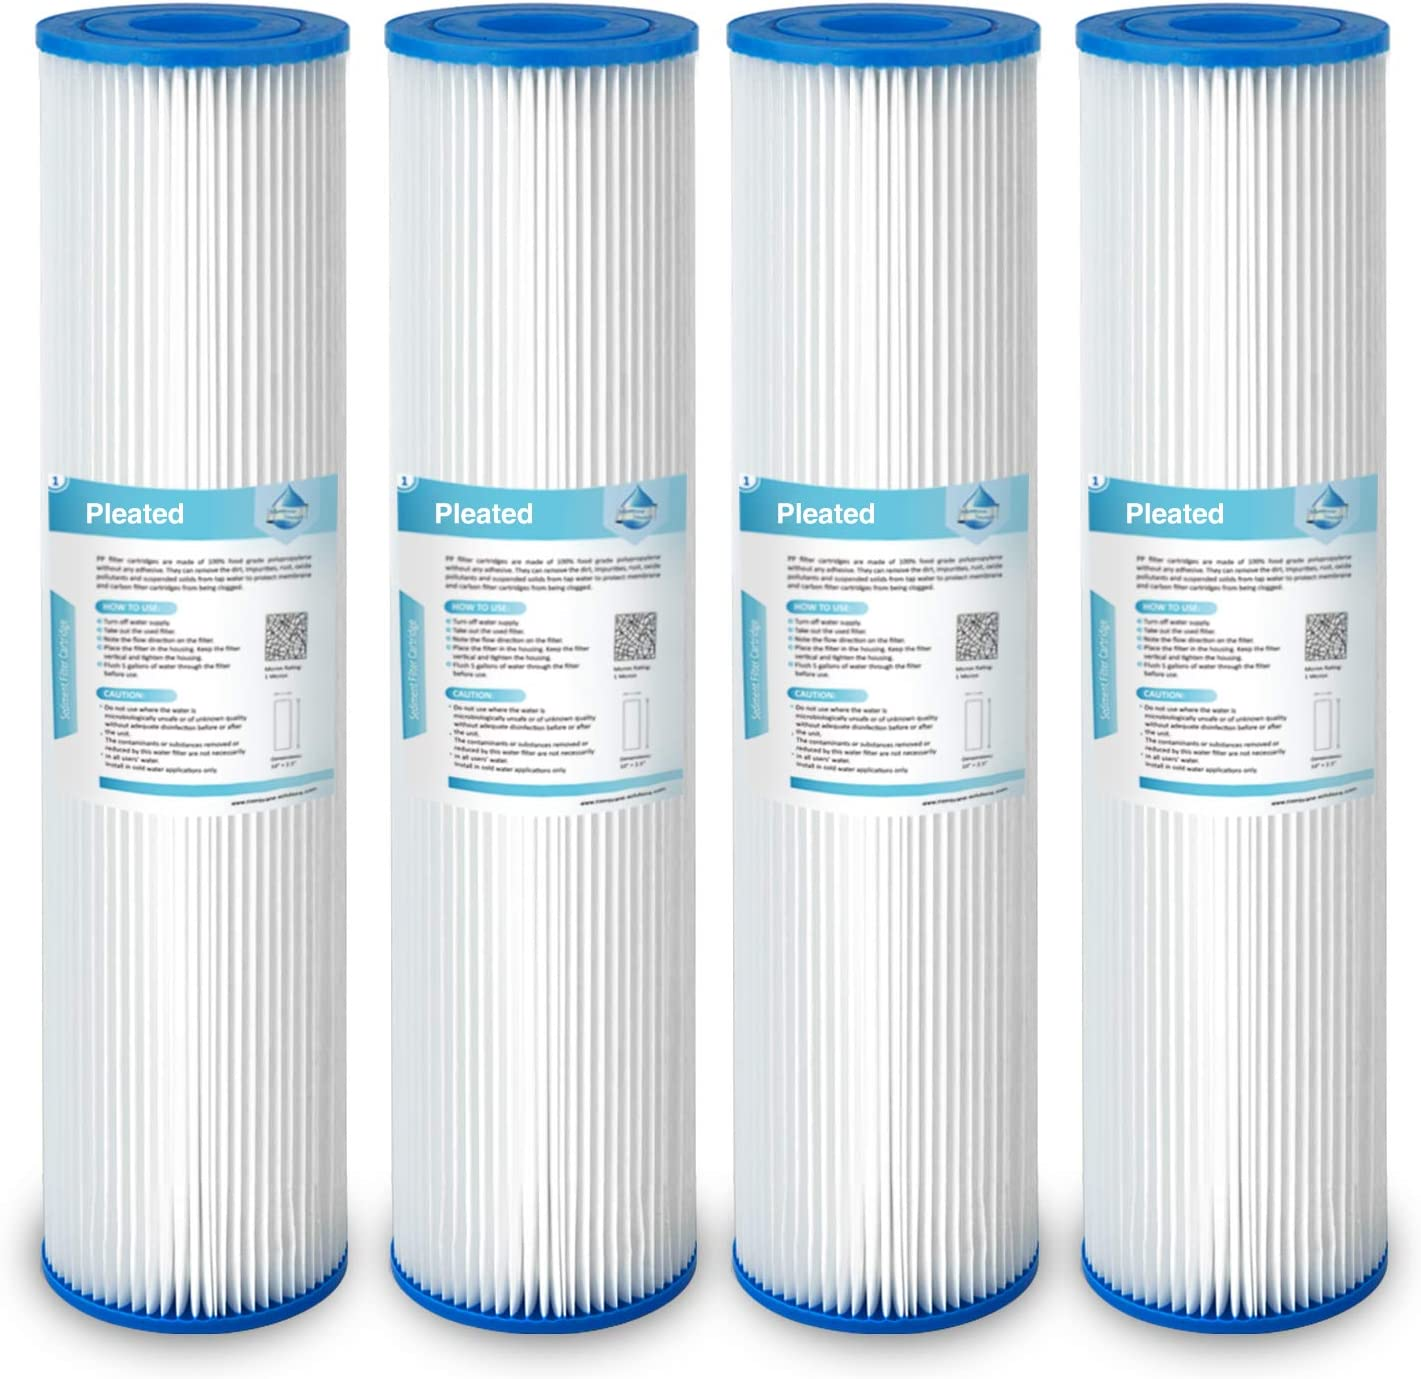 Membrane Solutions 20 Micron 4 Pack 10 x 2.5 Pleated Sediment Filter